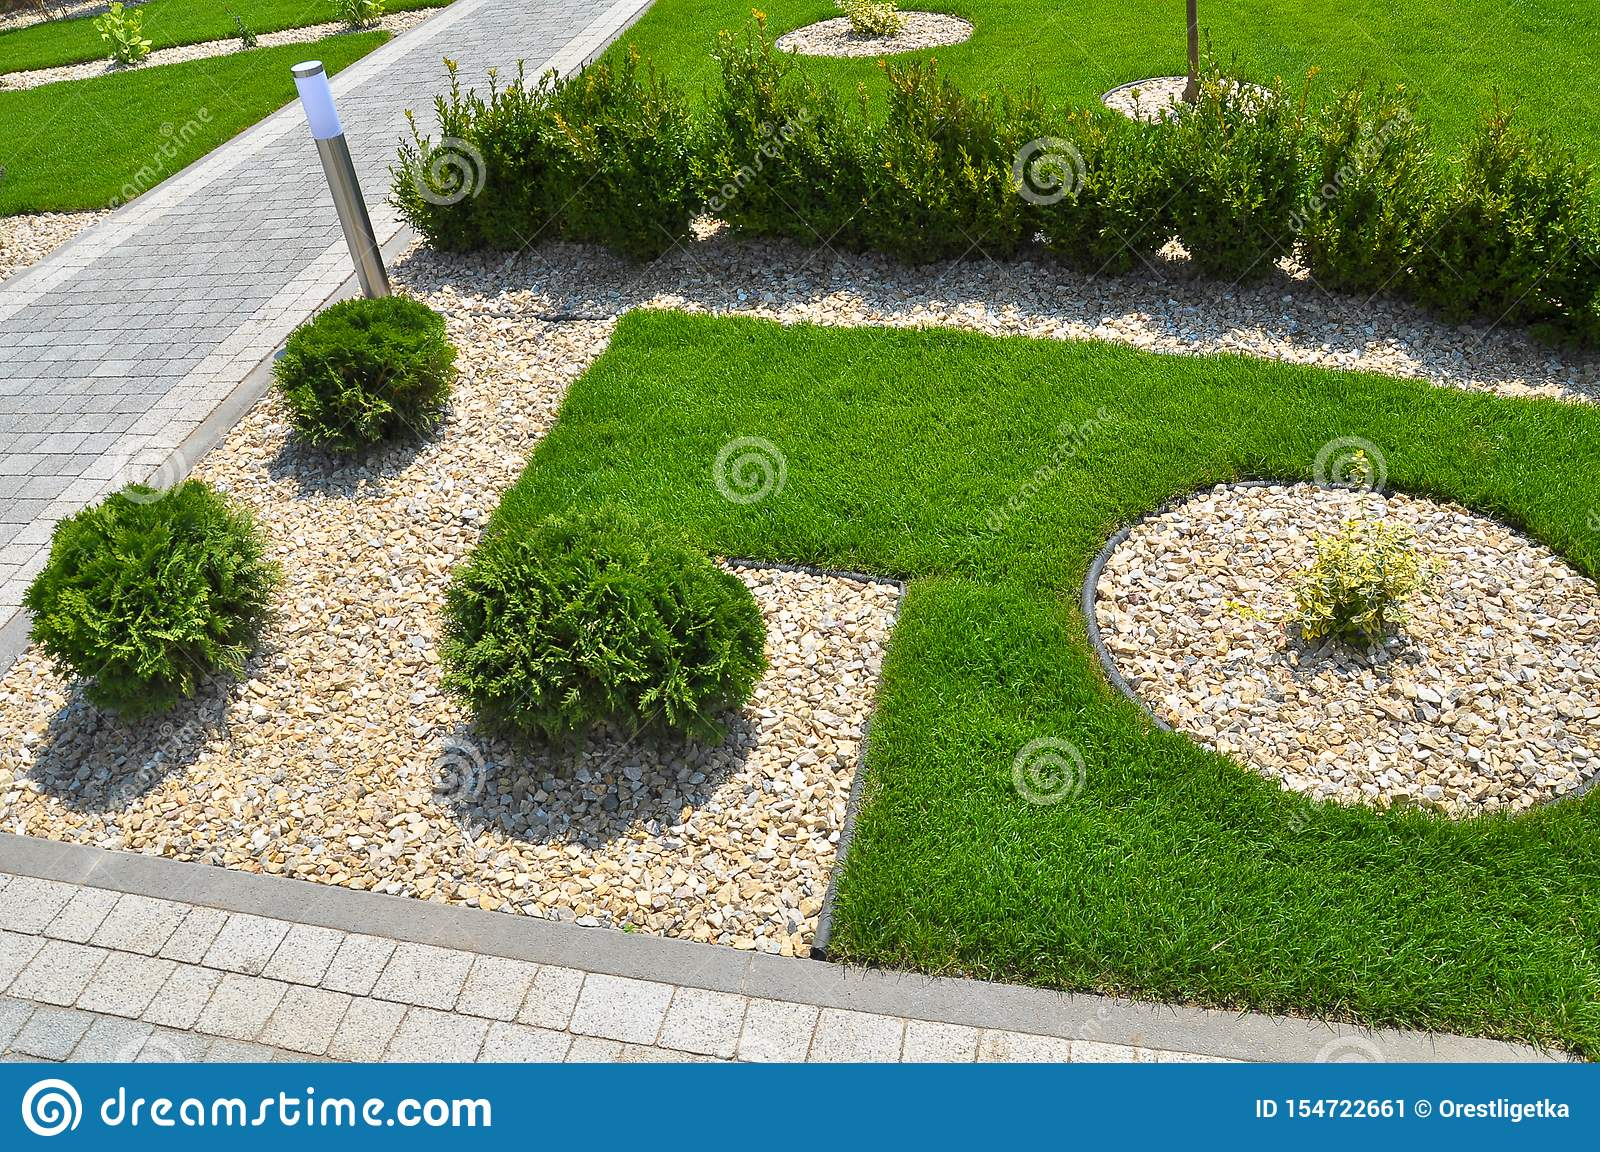 Design Of Landscaping In The Garden Park Square Recreation Area